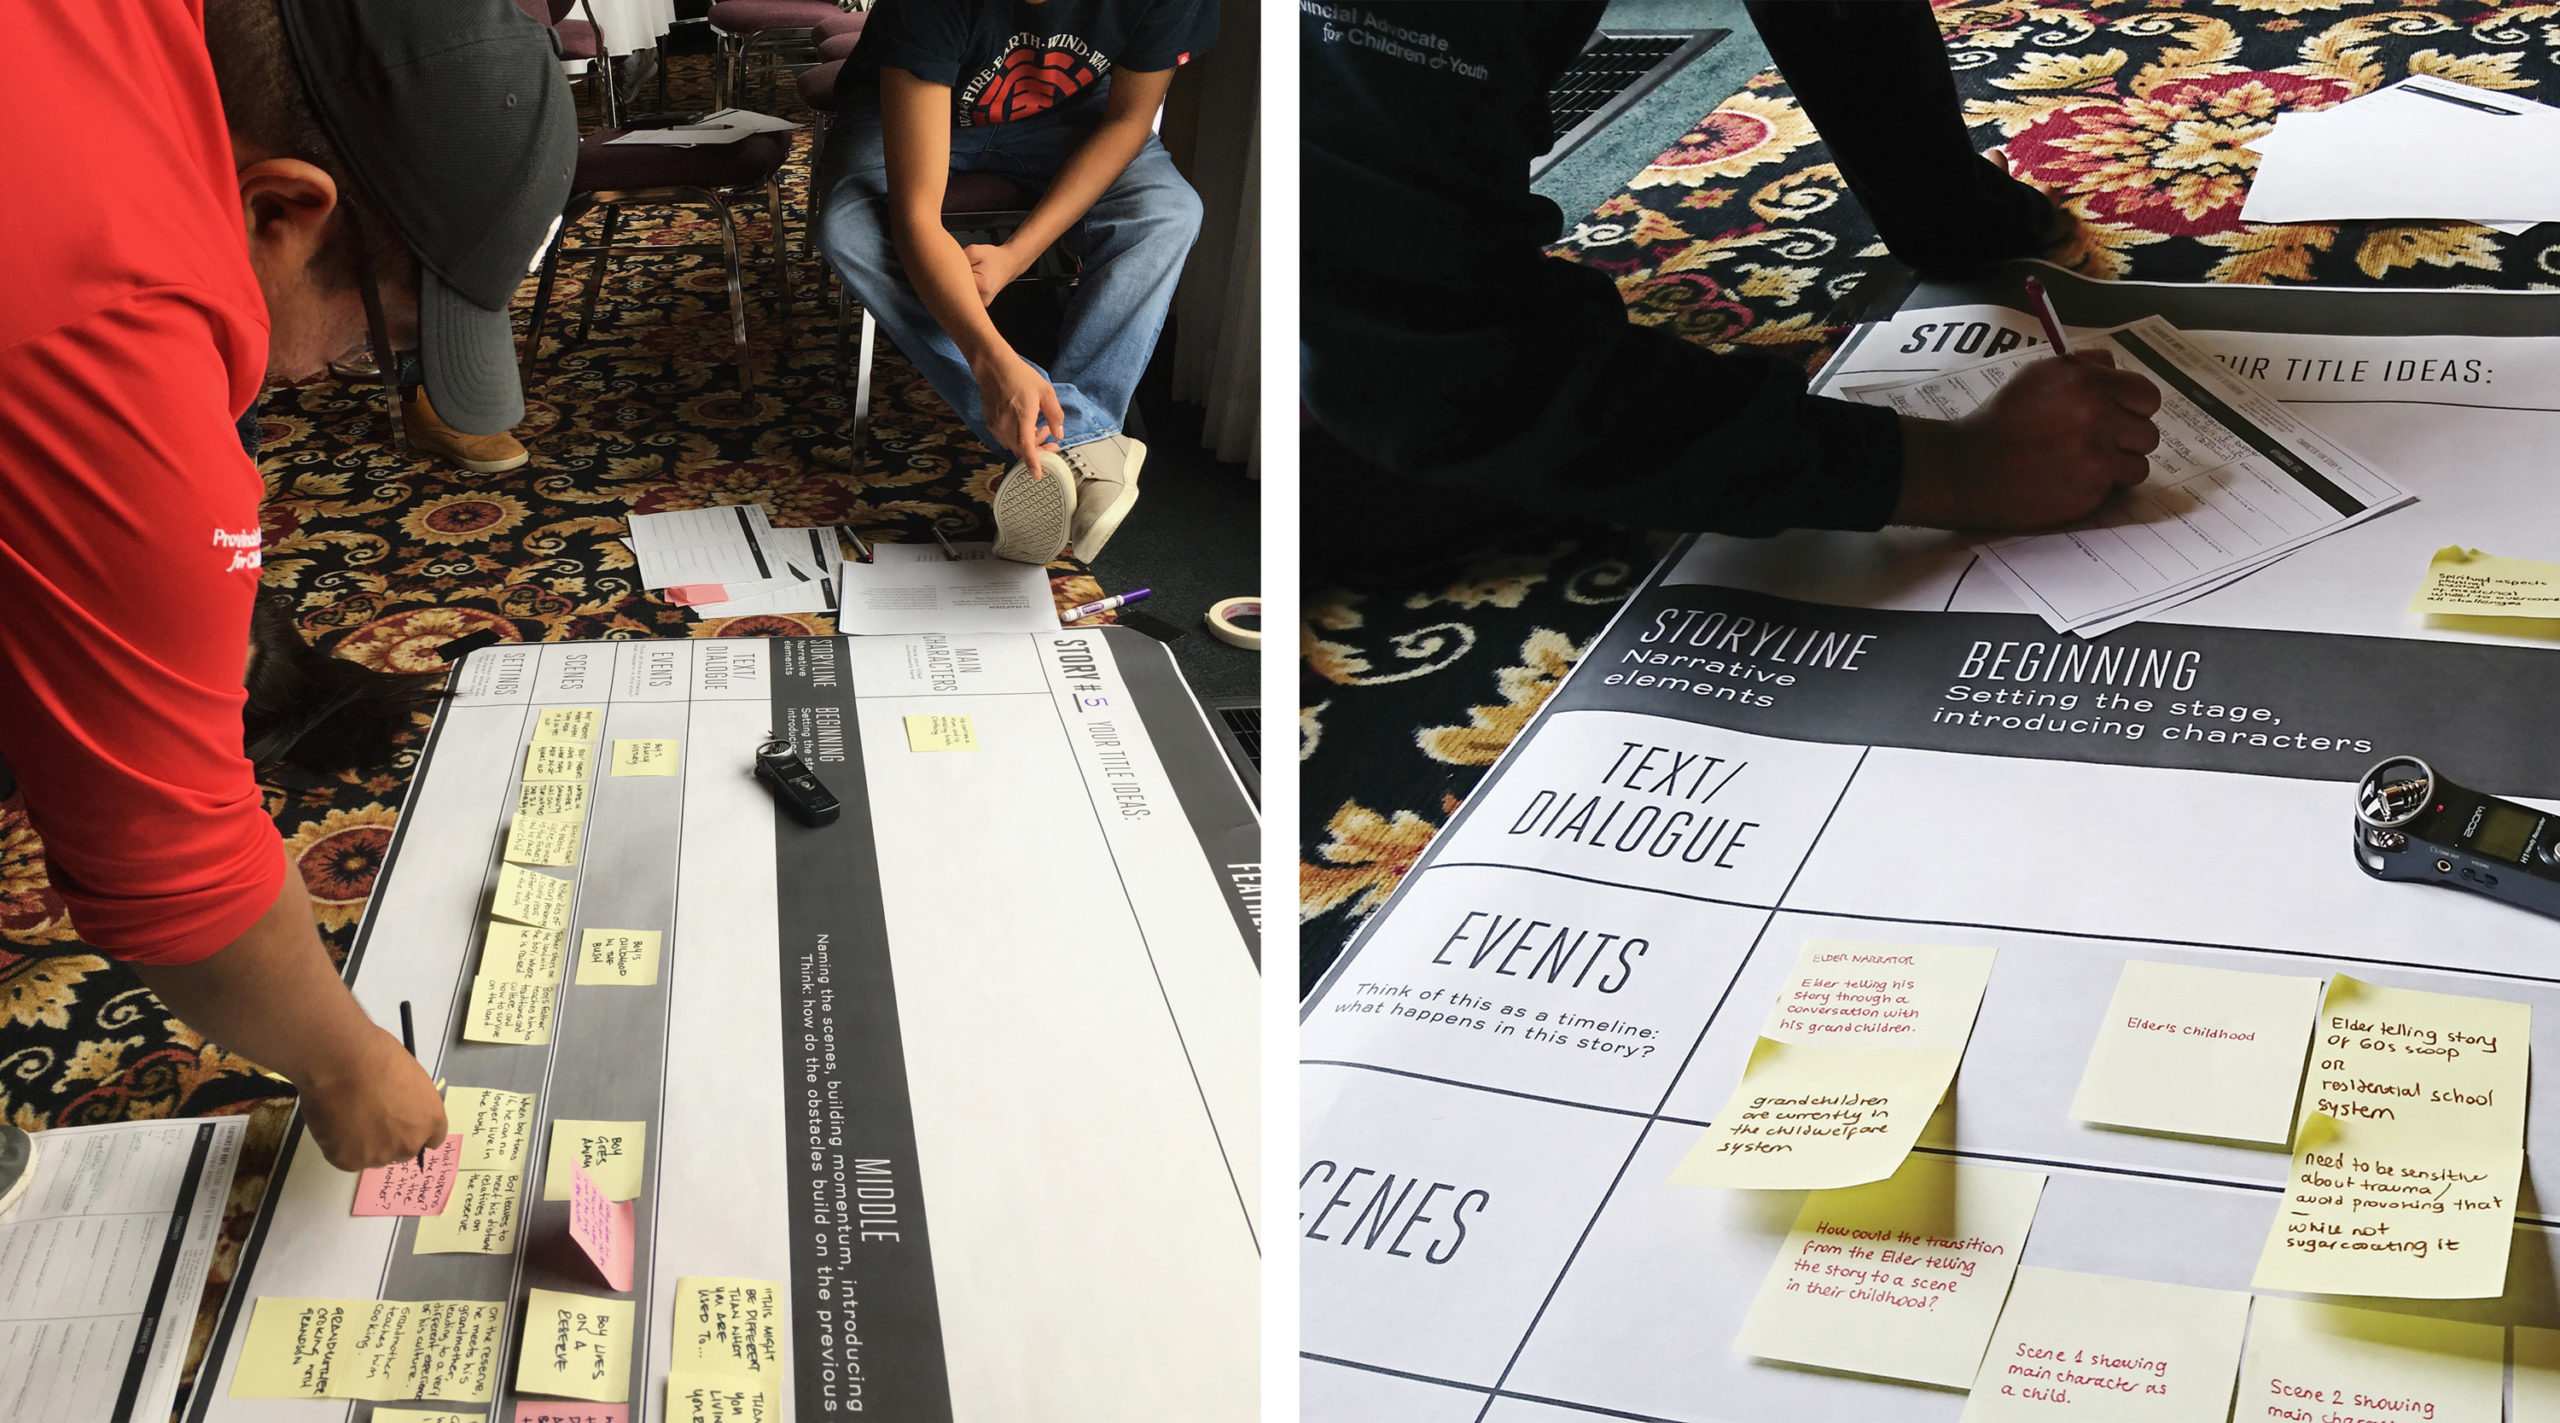 (Left): Photo of a group of advisors working on the floor. They are kneeling over a large printout of the storyline chart. At the left of the image is a young person reaching over the chart to place a post-it on it. In the background, another young person points to the chart, filled with handwritten notes in other post-its. (Right): Photo of close up of the chart with post-it notes. The arm of a young person can be seen in the background, writing on a worksheet page.